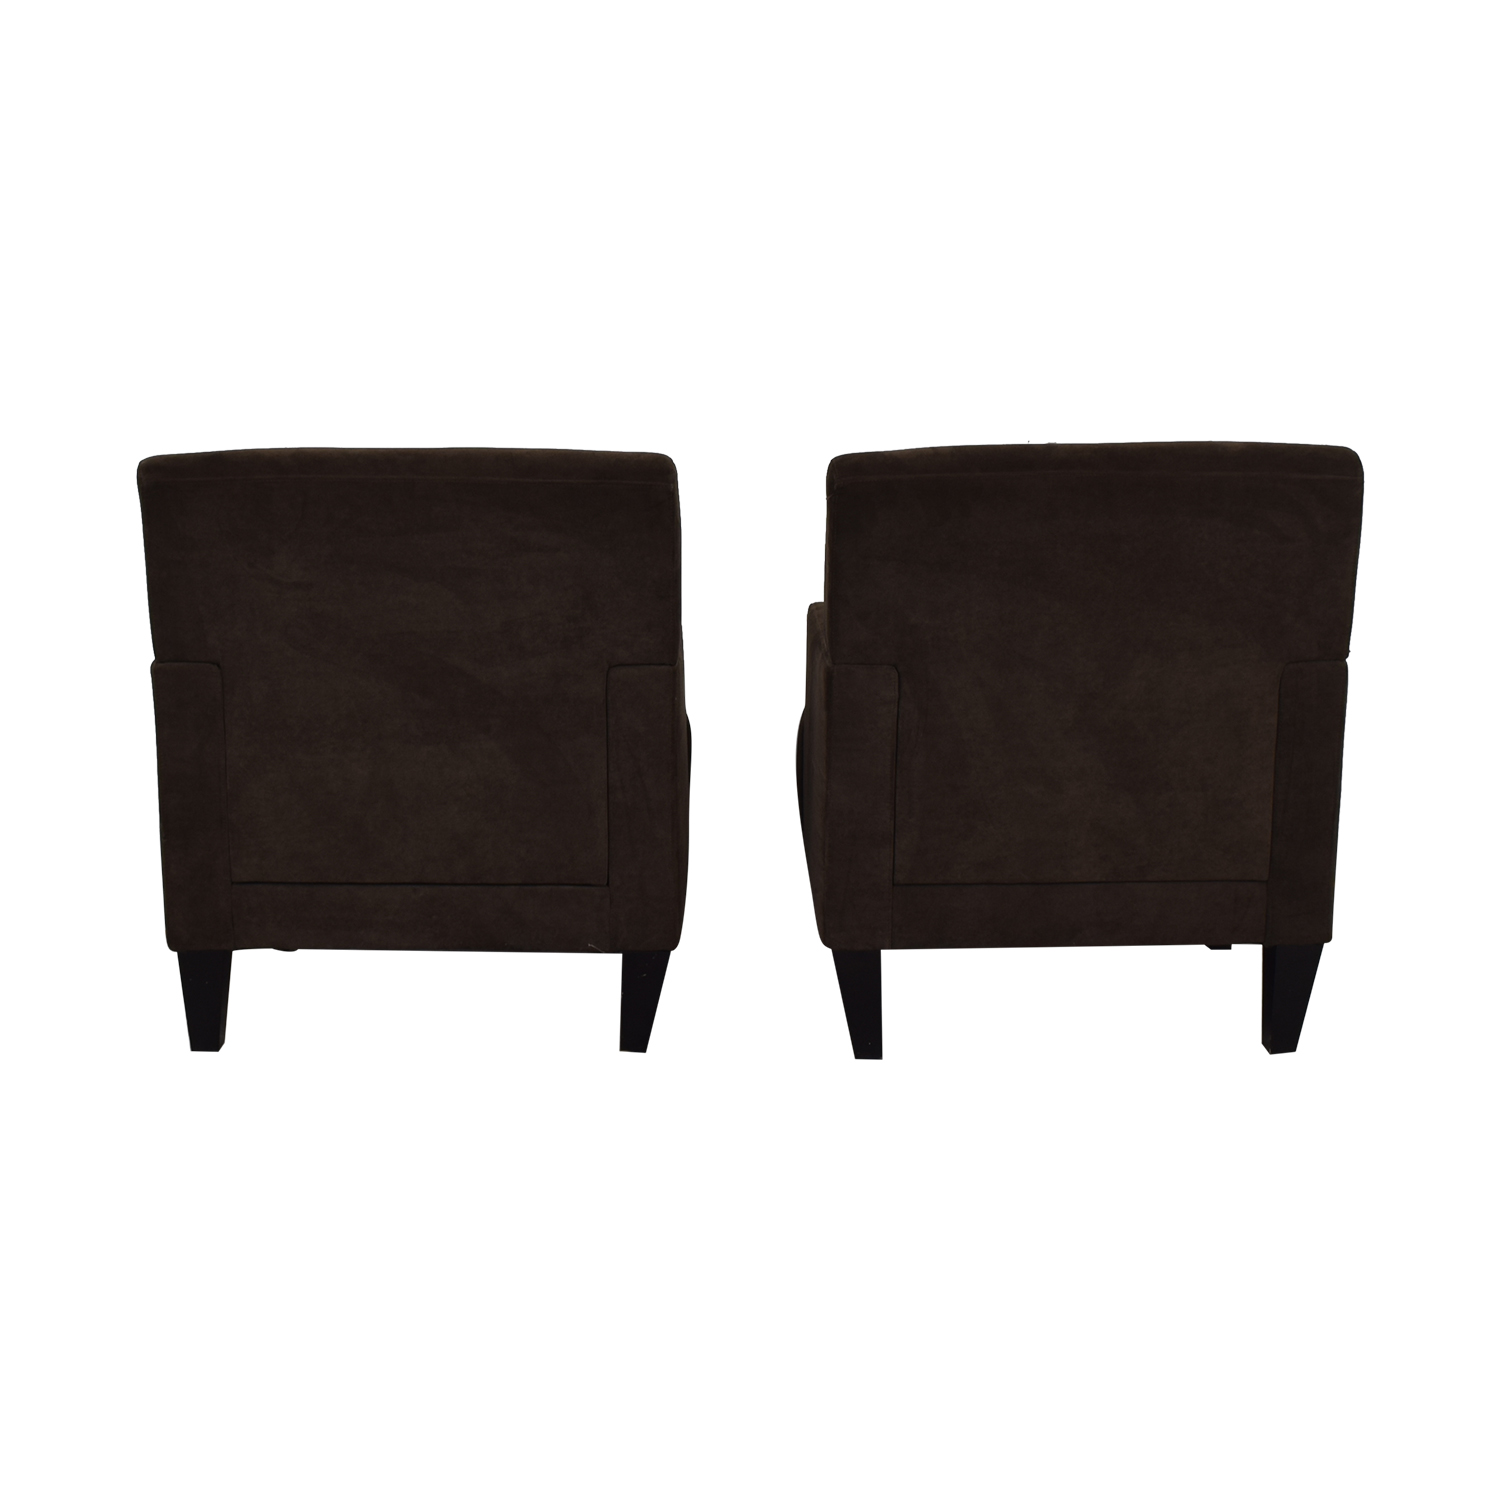 Havertys Havertys Brown Arm Accent Chairs Chairs